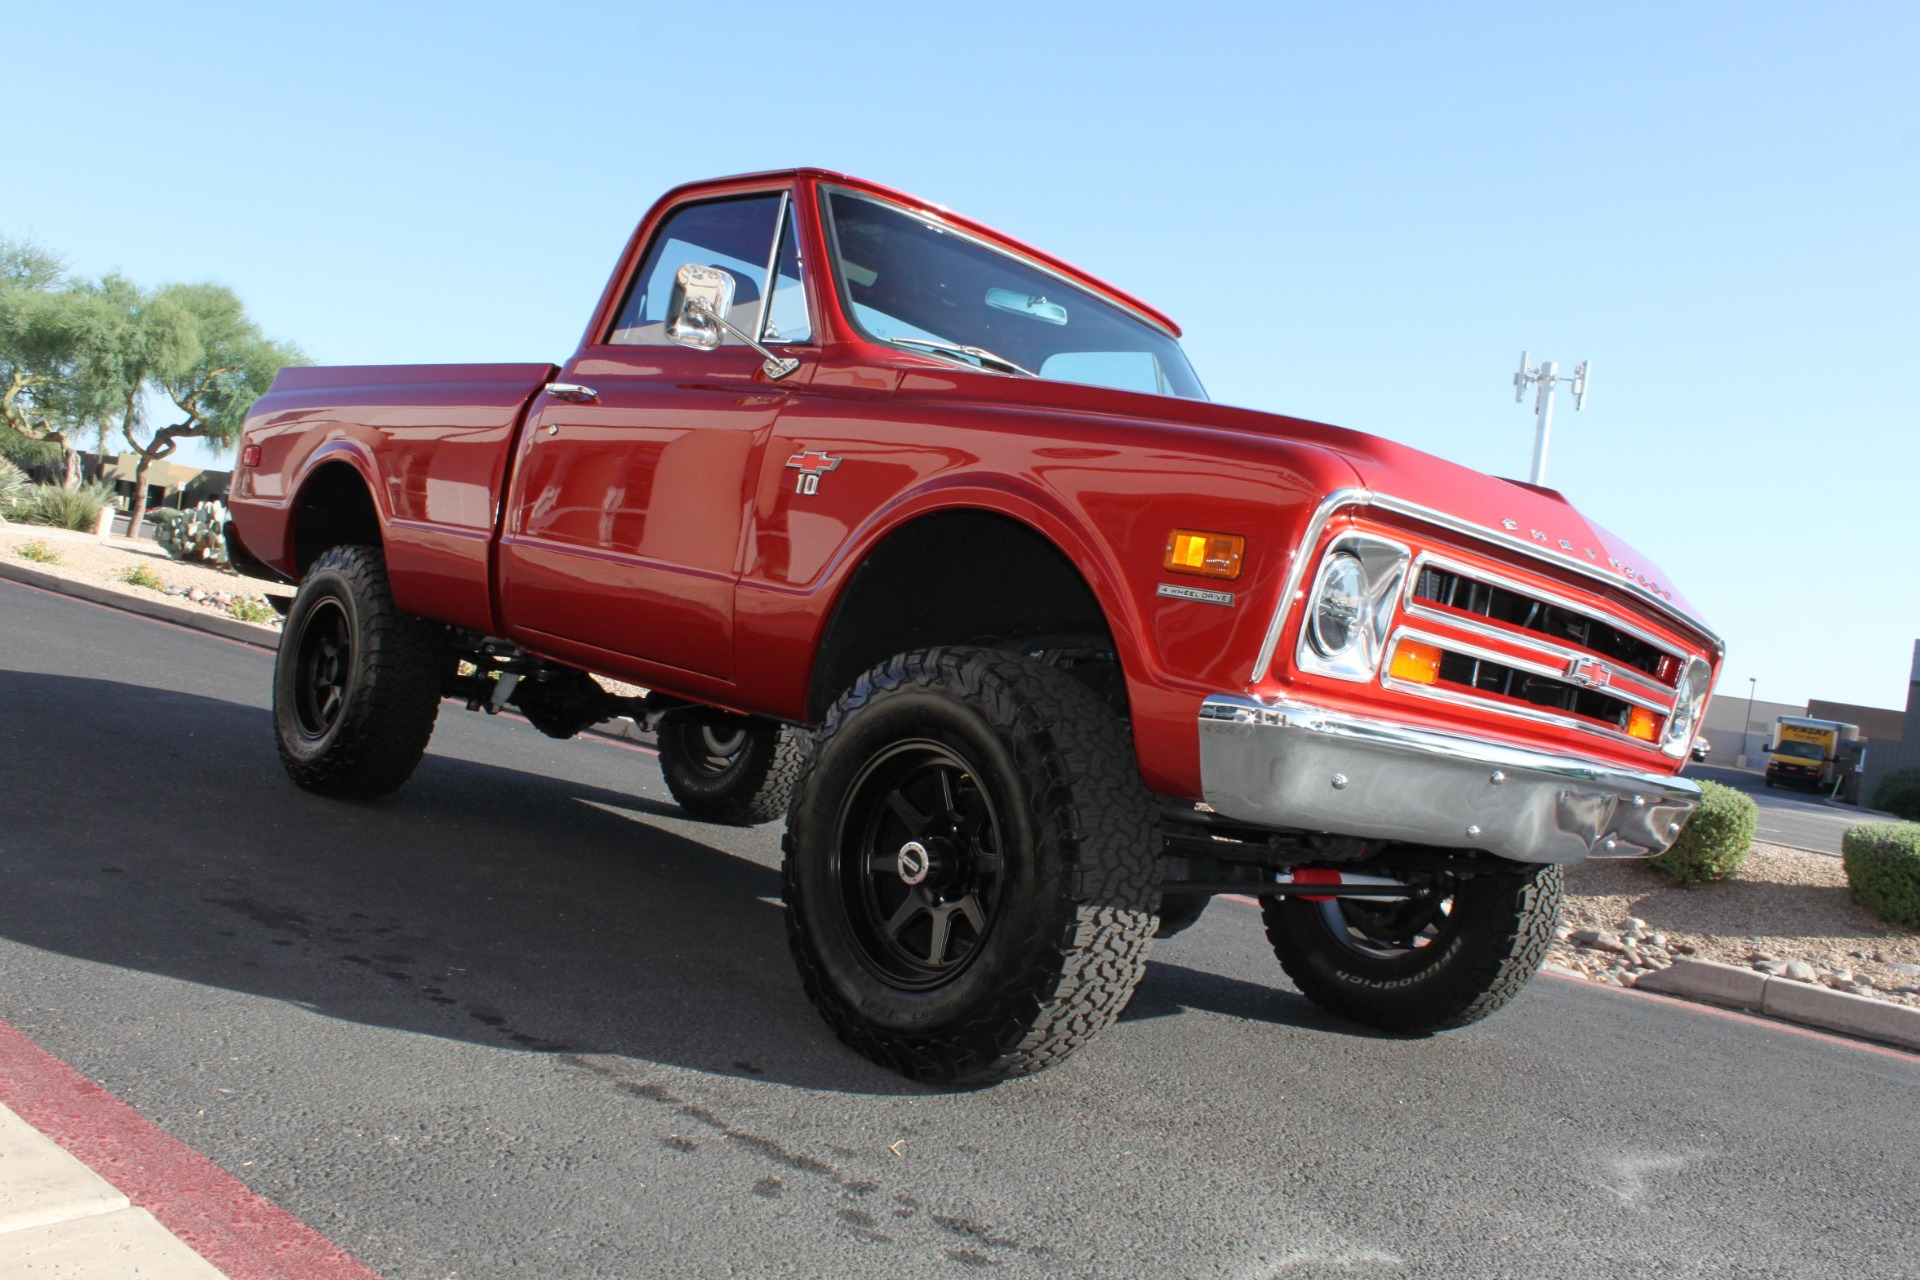 Used-1968-Chevrolet-K10-(C10)-1/2-Ton-Short-Bed-4X4-Lamborghini